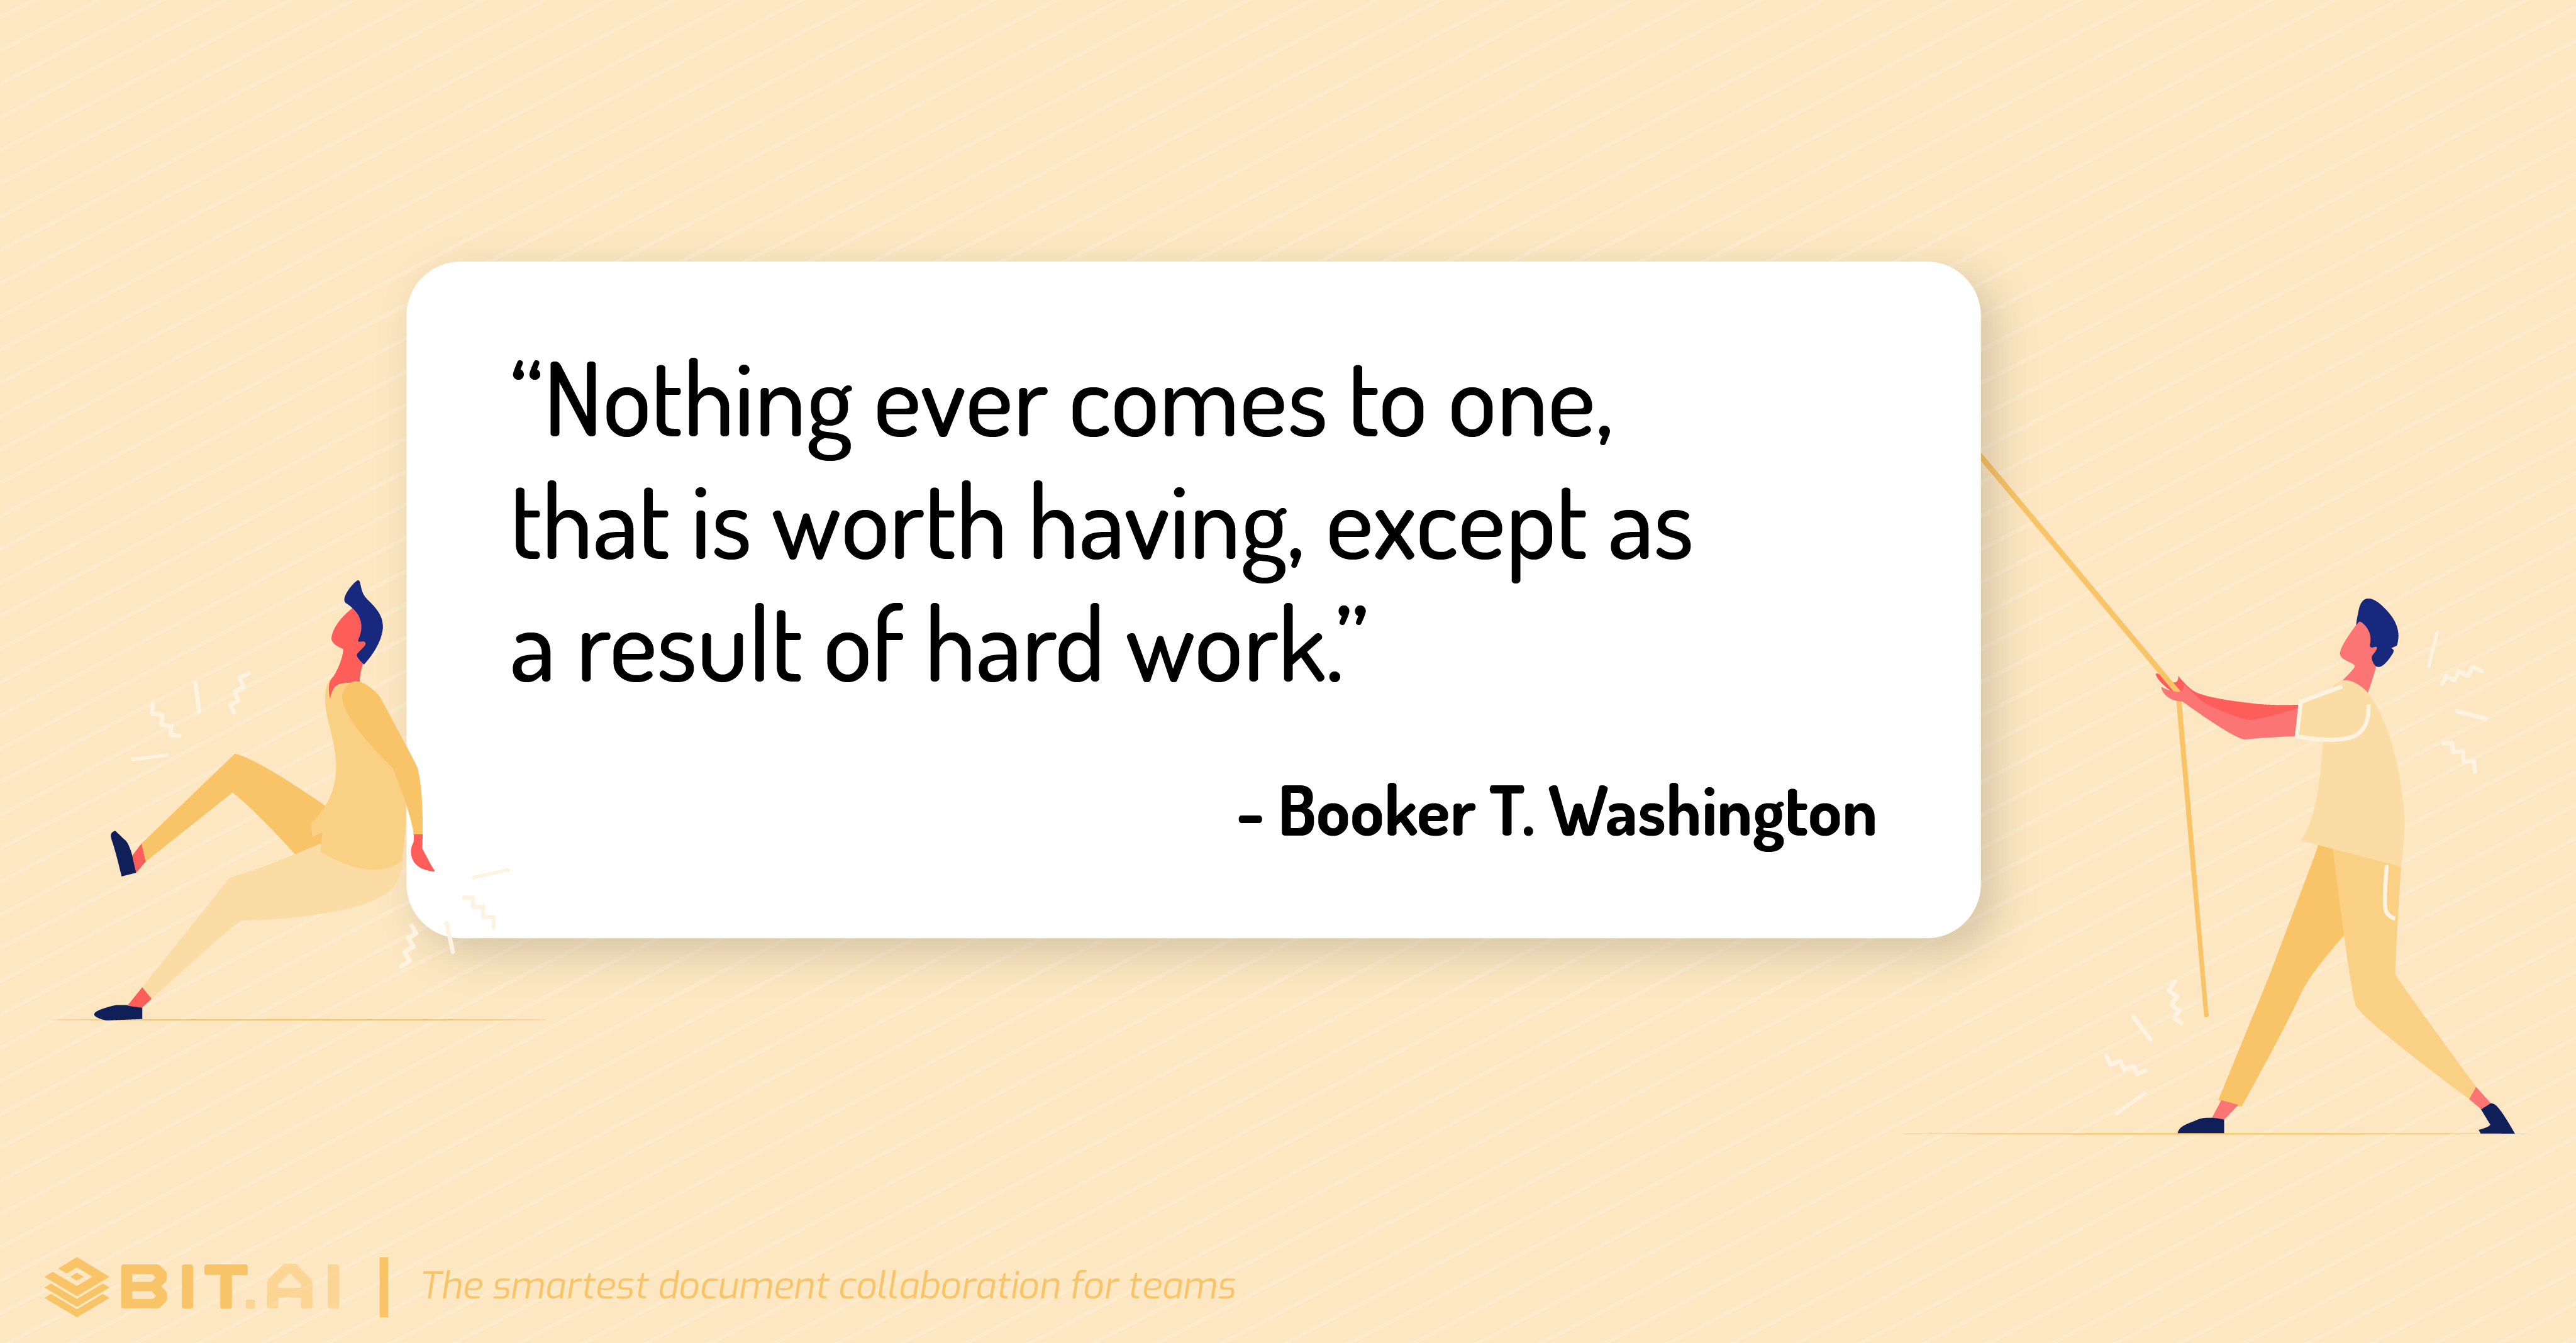 Hard work quote by Booker T. Washington